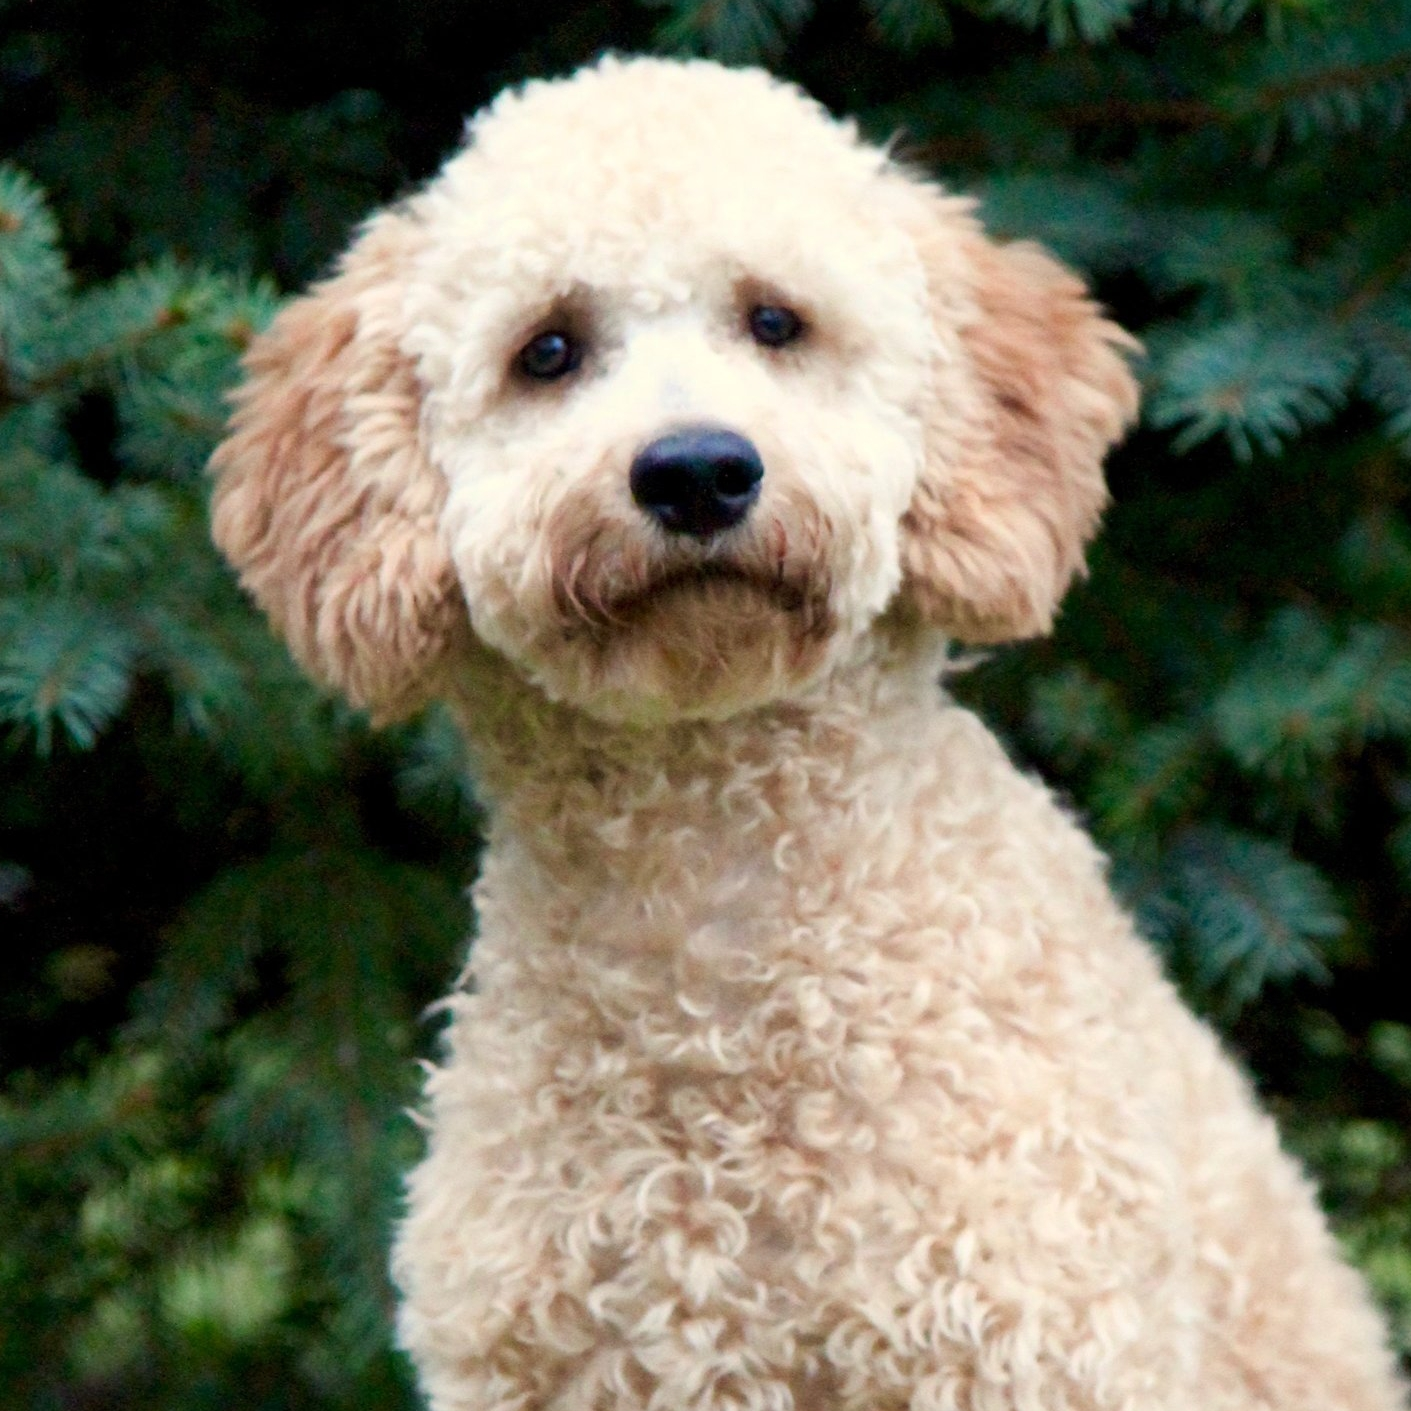 Honey the Goldendoodle